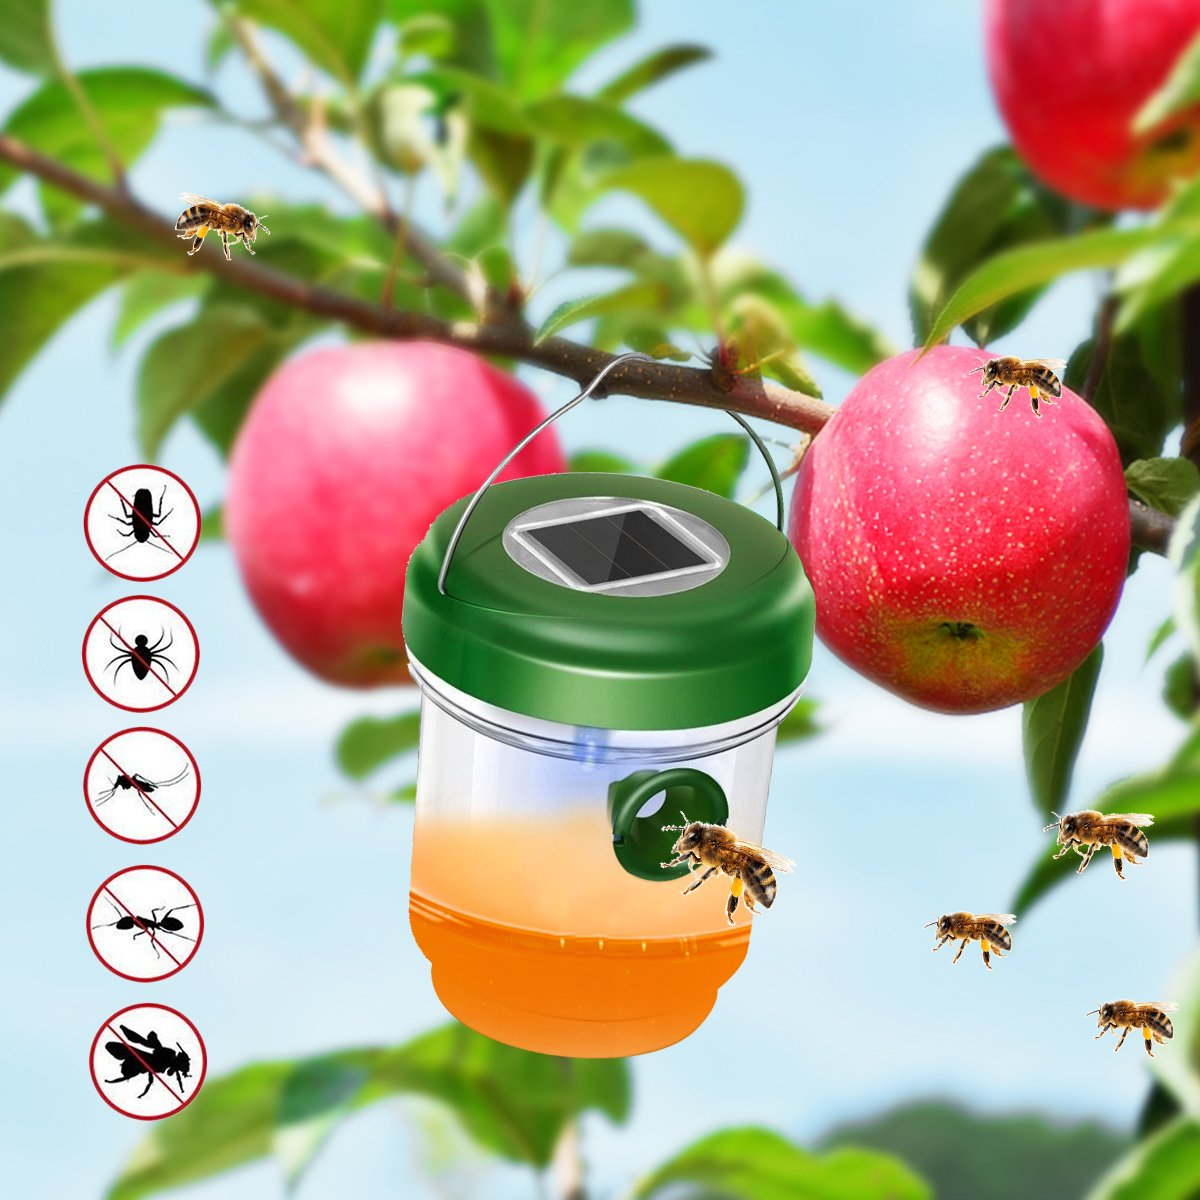 DAPRIL Wasp Trap Catcher, Life Outdoor Solar Powered Ultraviolet LED Light - Perfect for Wasps Bees Yellow Jackets Hornets Bugs Fly and More (Green) (advanced)